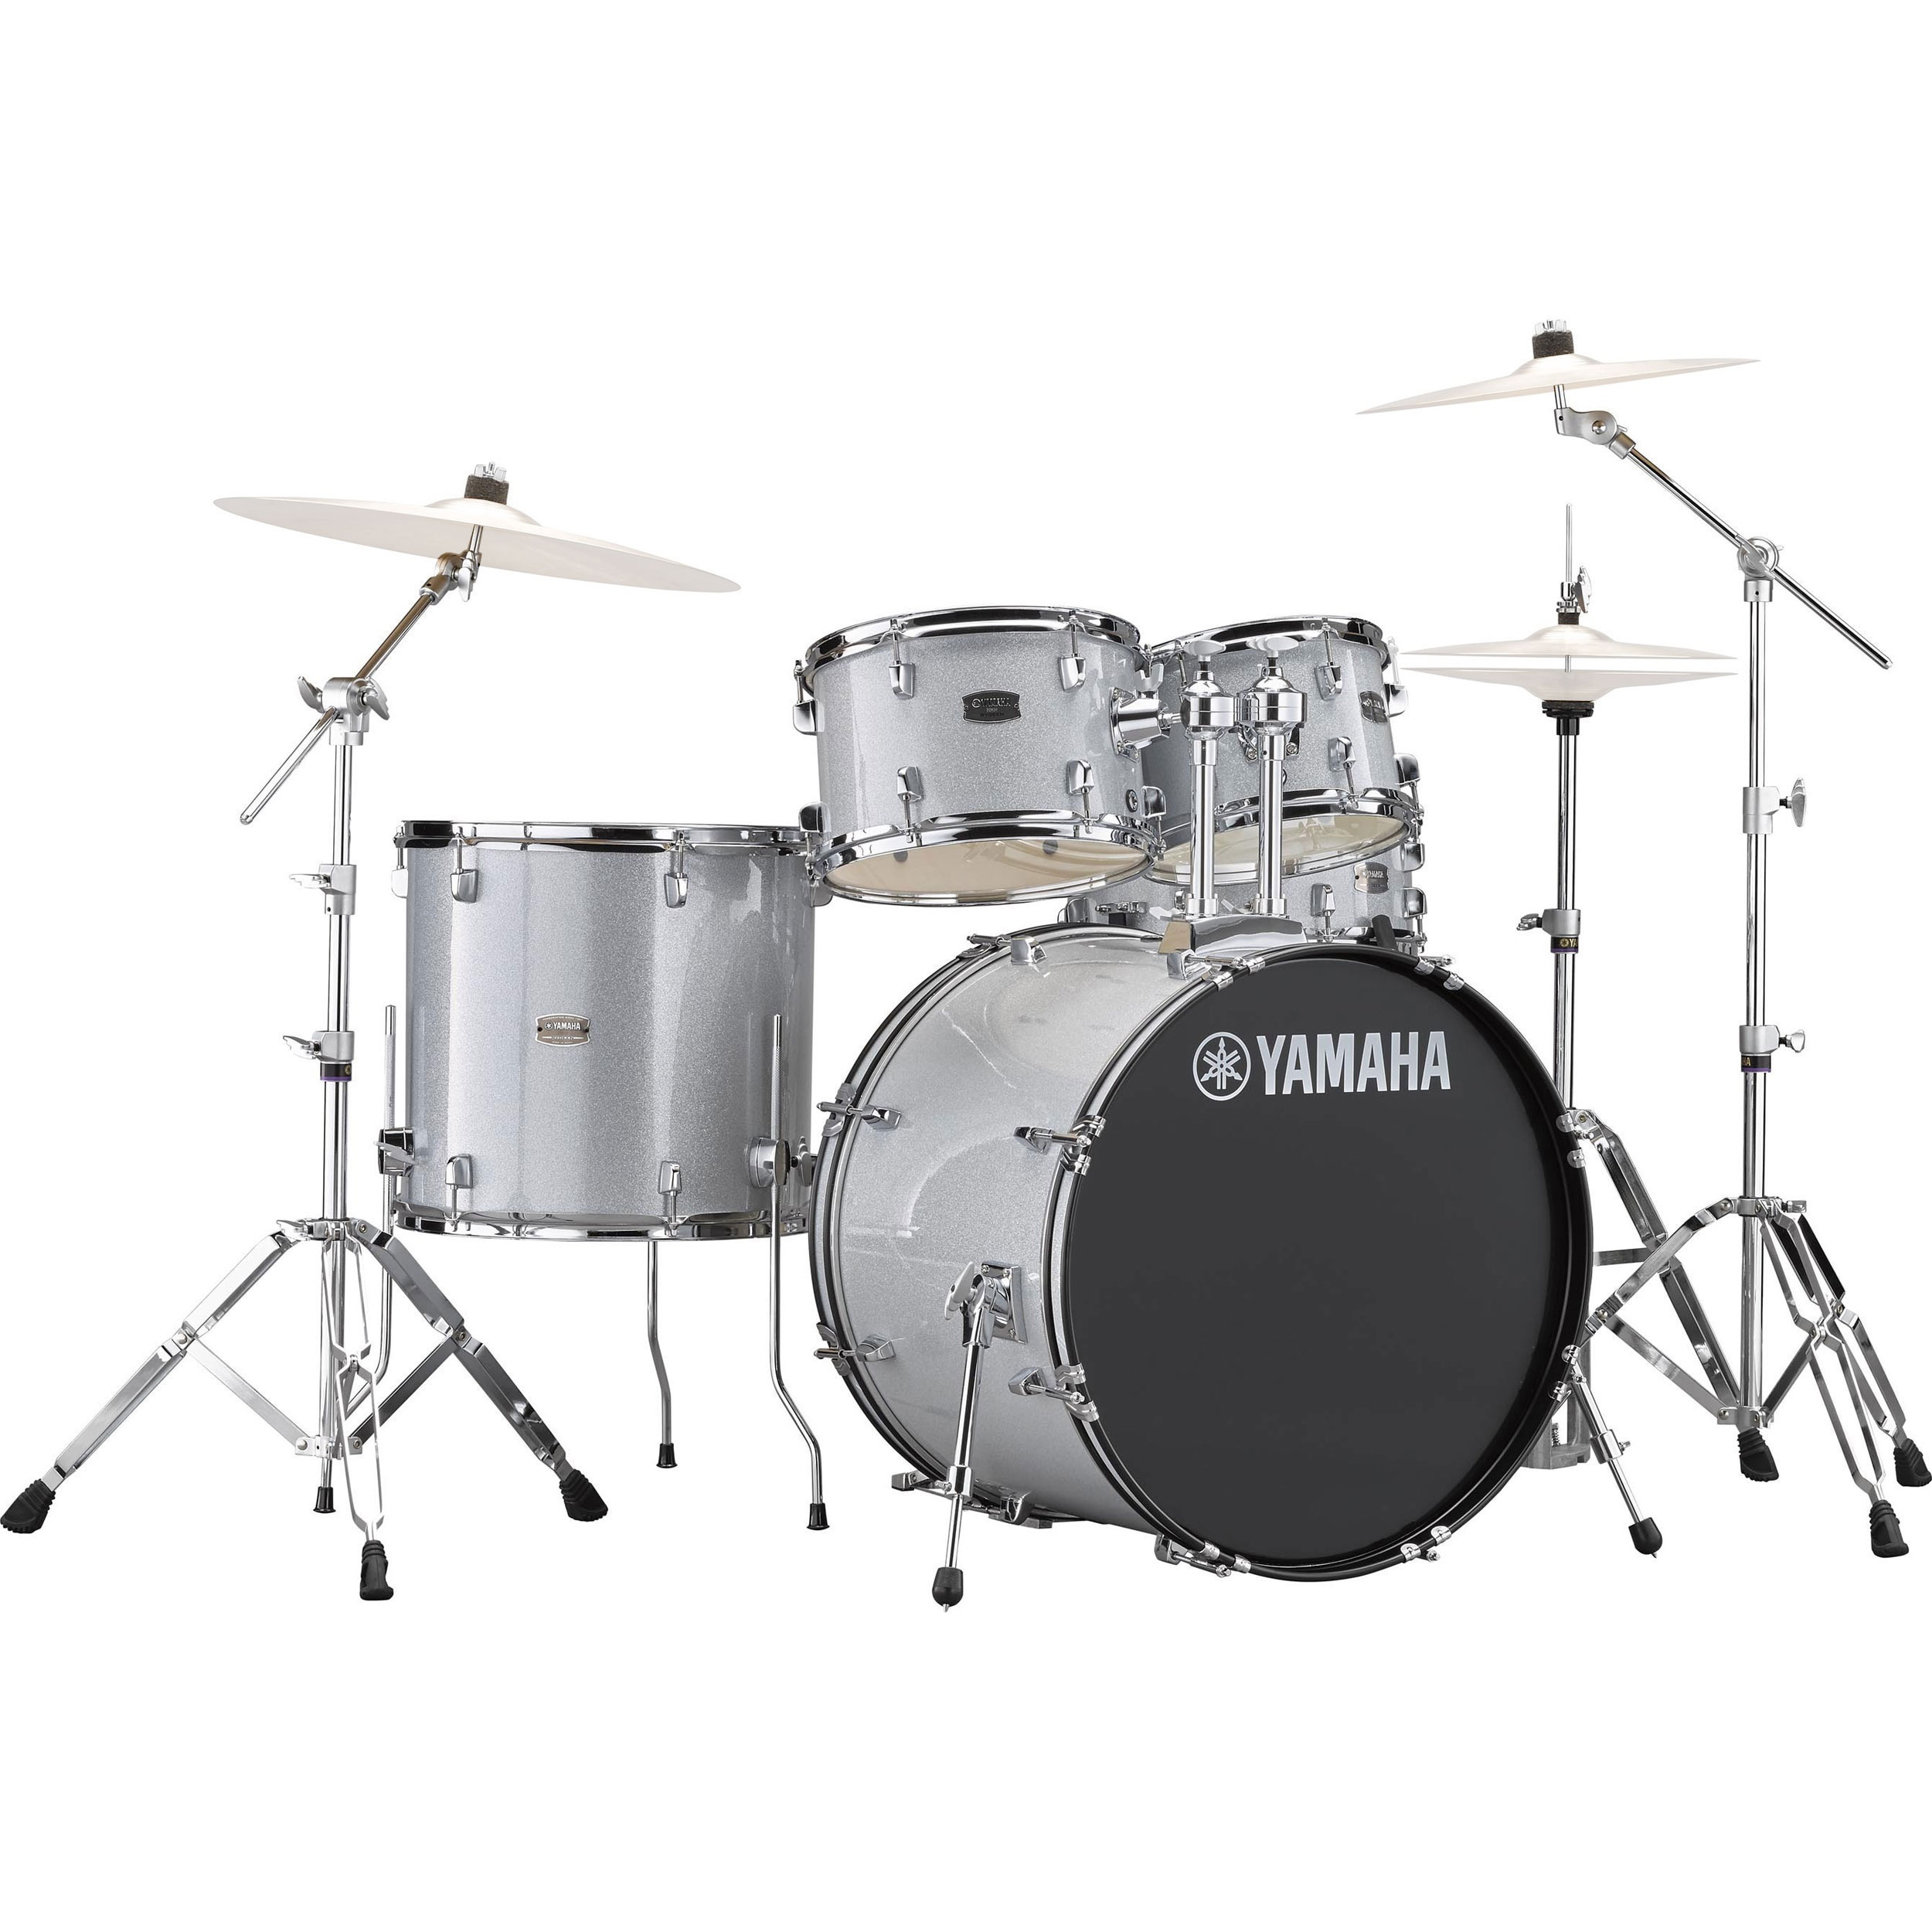 yamaha rydeen 5 piece drum set with hardware 22 bass 10 12 16 toms 14 snare rdp2f56w. Black Bedroom Furniture Sets. Home Design Ideas